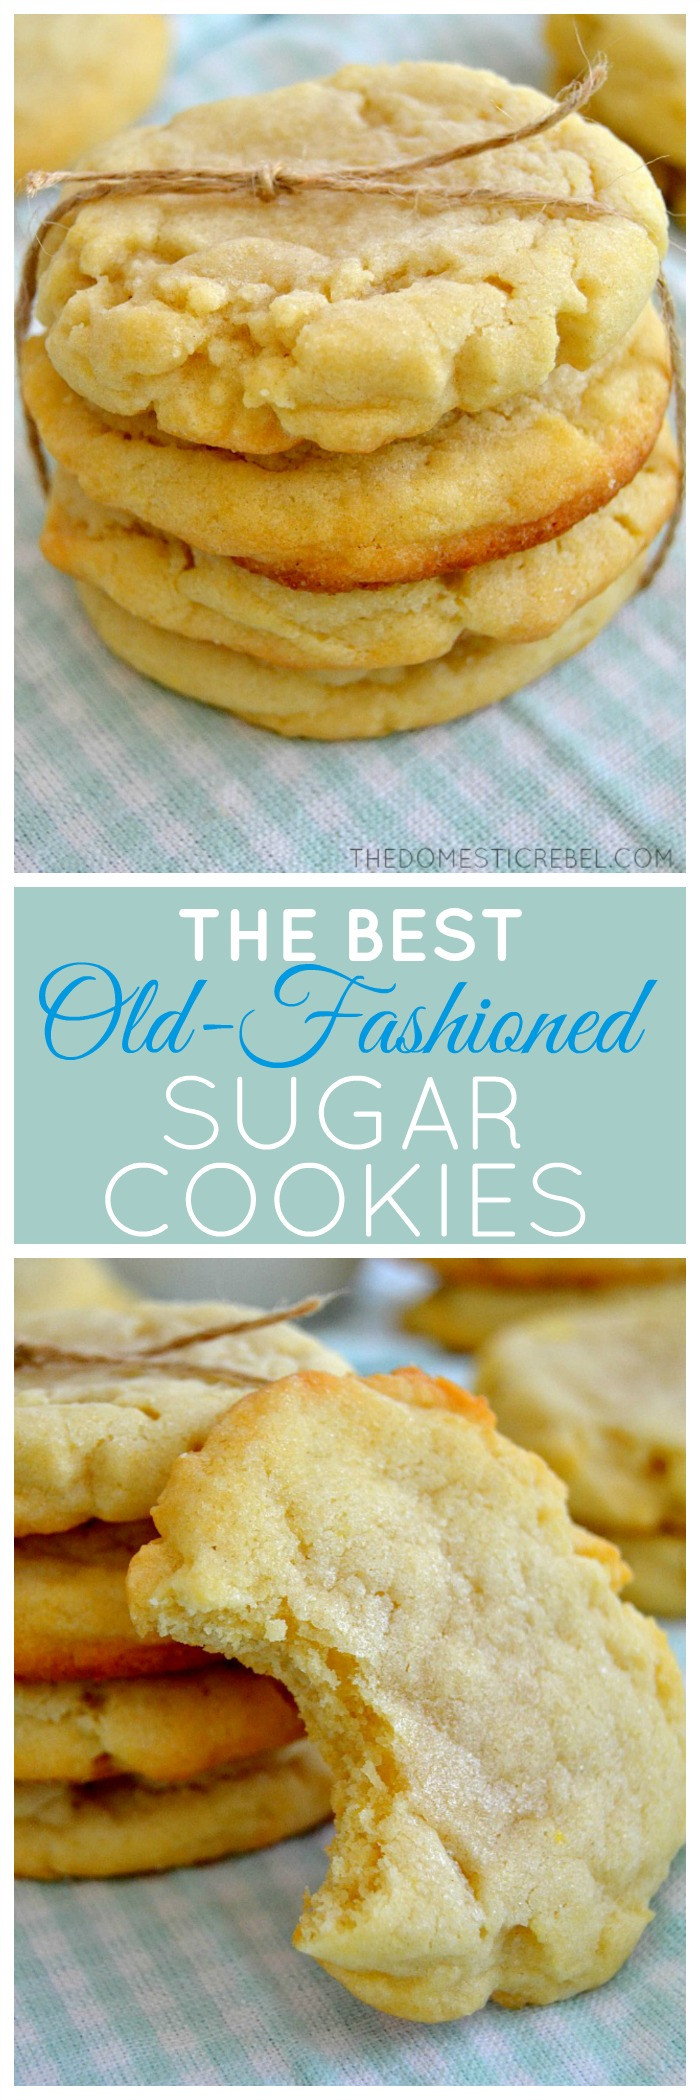 Old Fashioned Sugar Cookies  The Best Old Fashioned Sugar Cookies